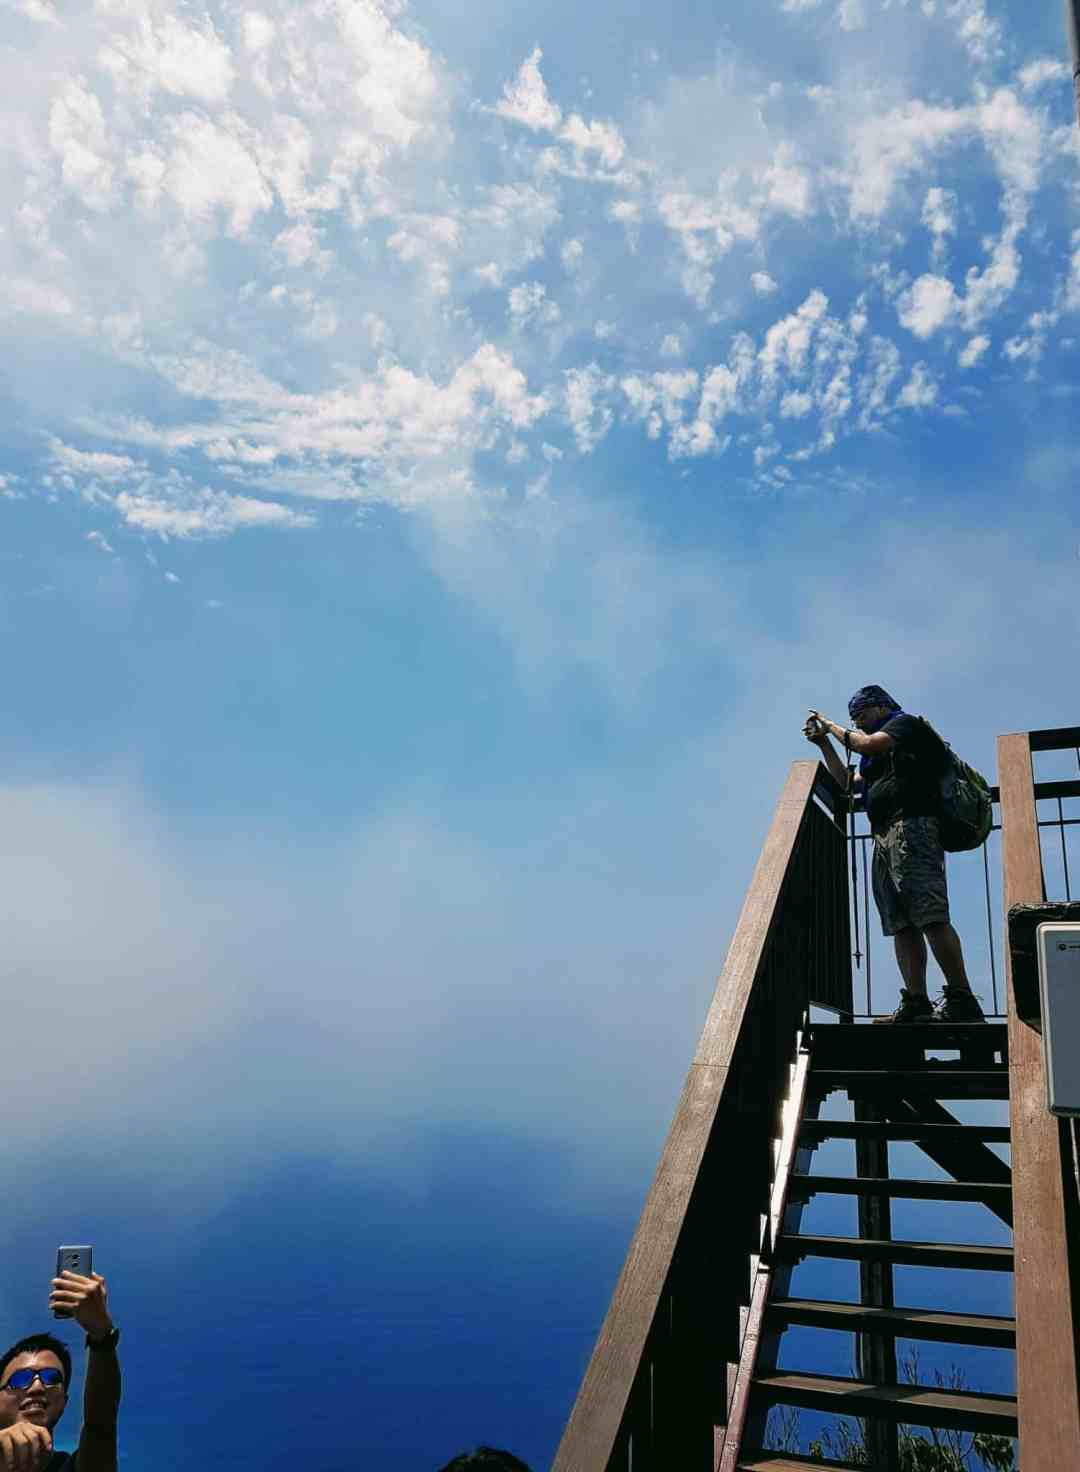 Beautiful Sky and Photos being taken by Harrison Hung